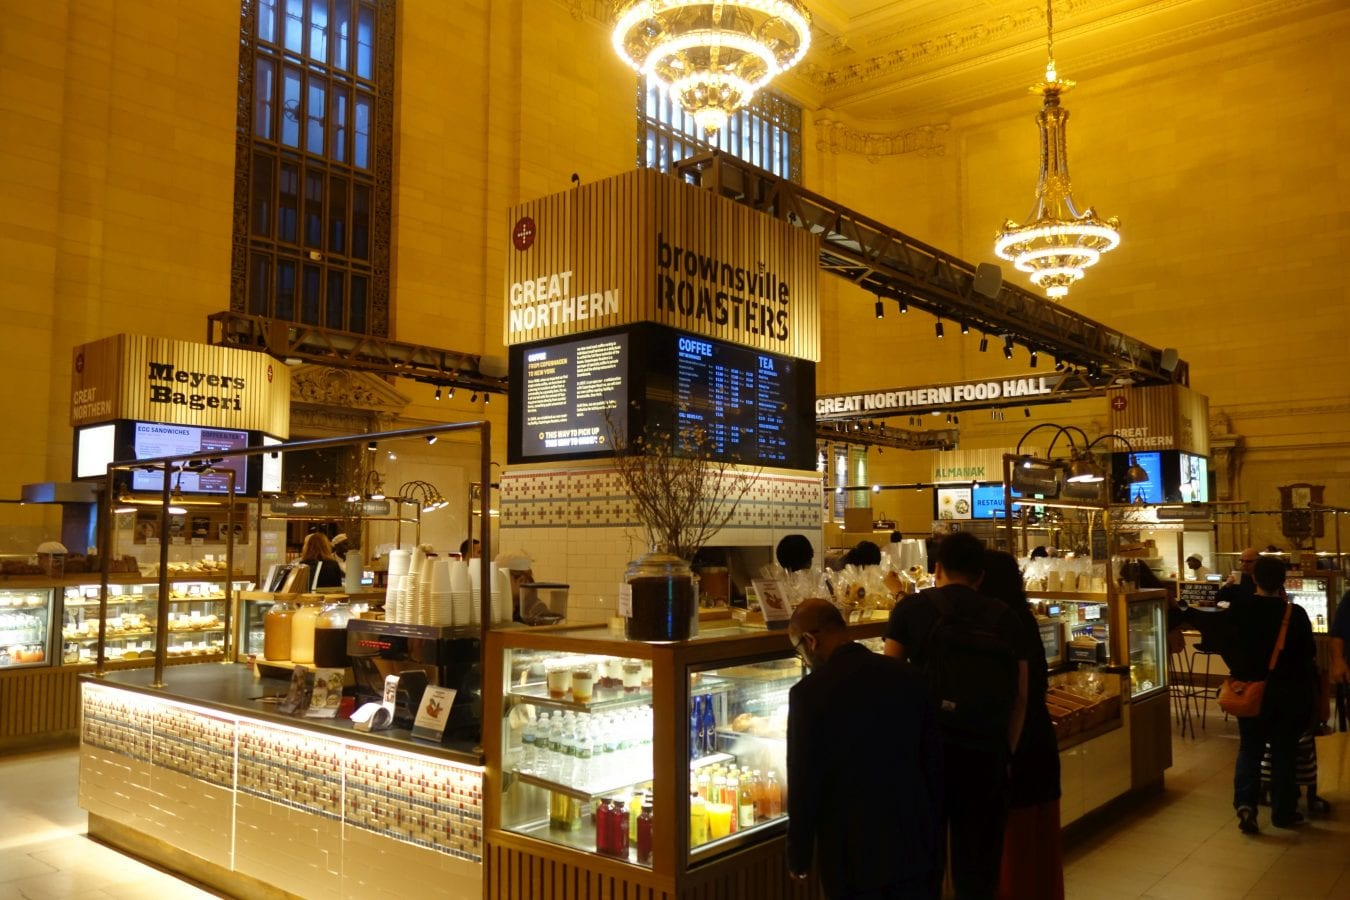 Great Northern Food Hall Great Northern Food Hall New York Ny  Endo Edibles